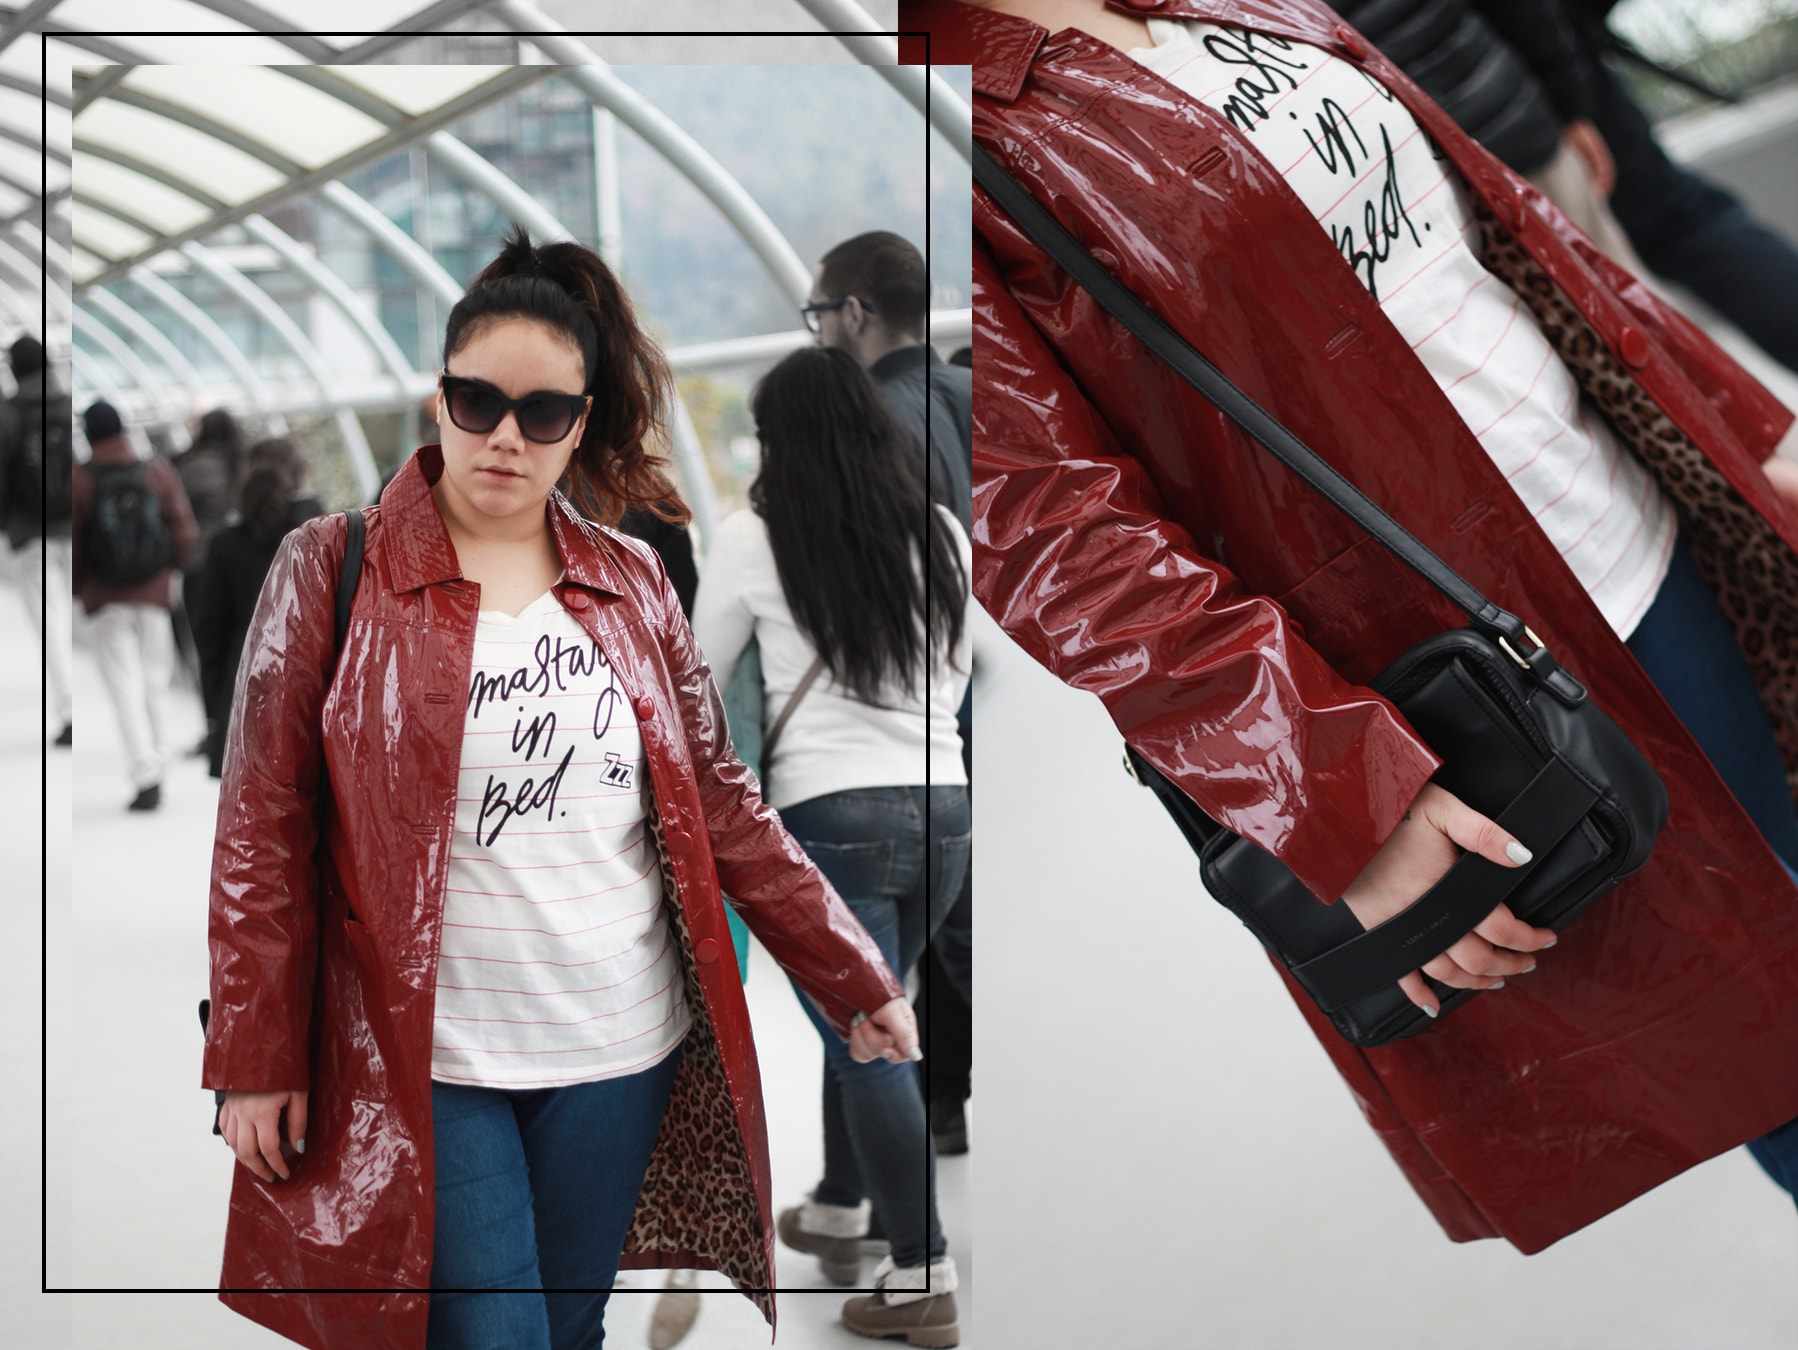 Patent leather vintage red trench coat + jeans and graphic tee + golden strokes - luisa verdee